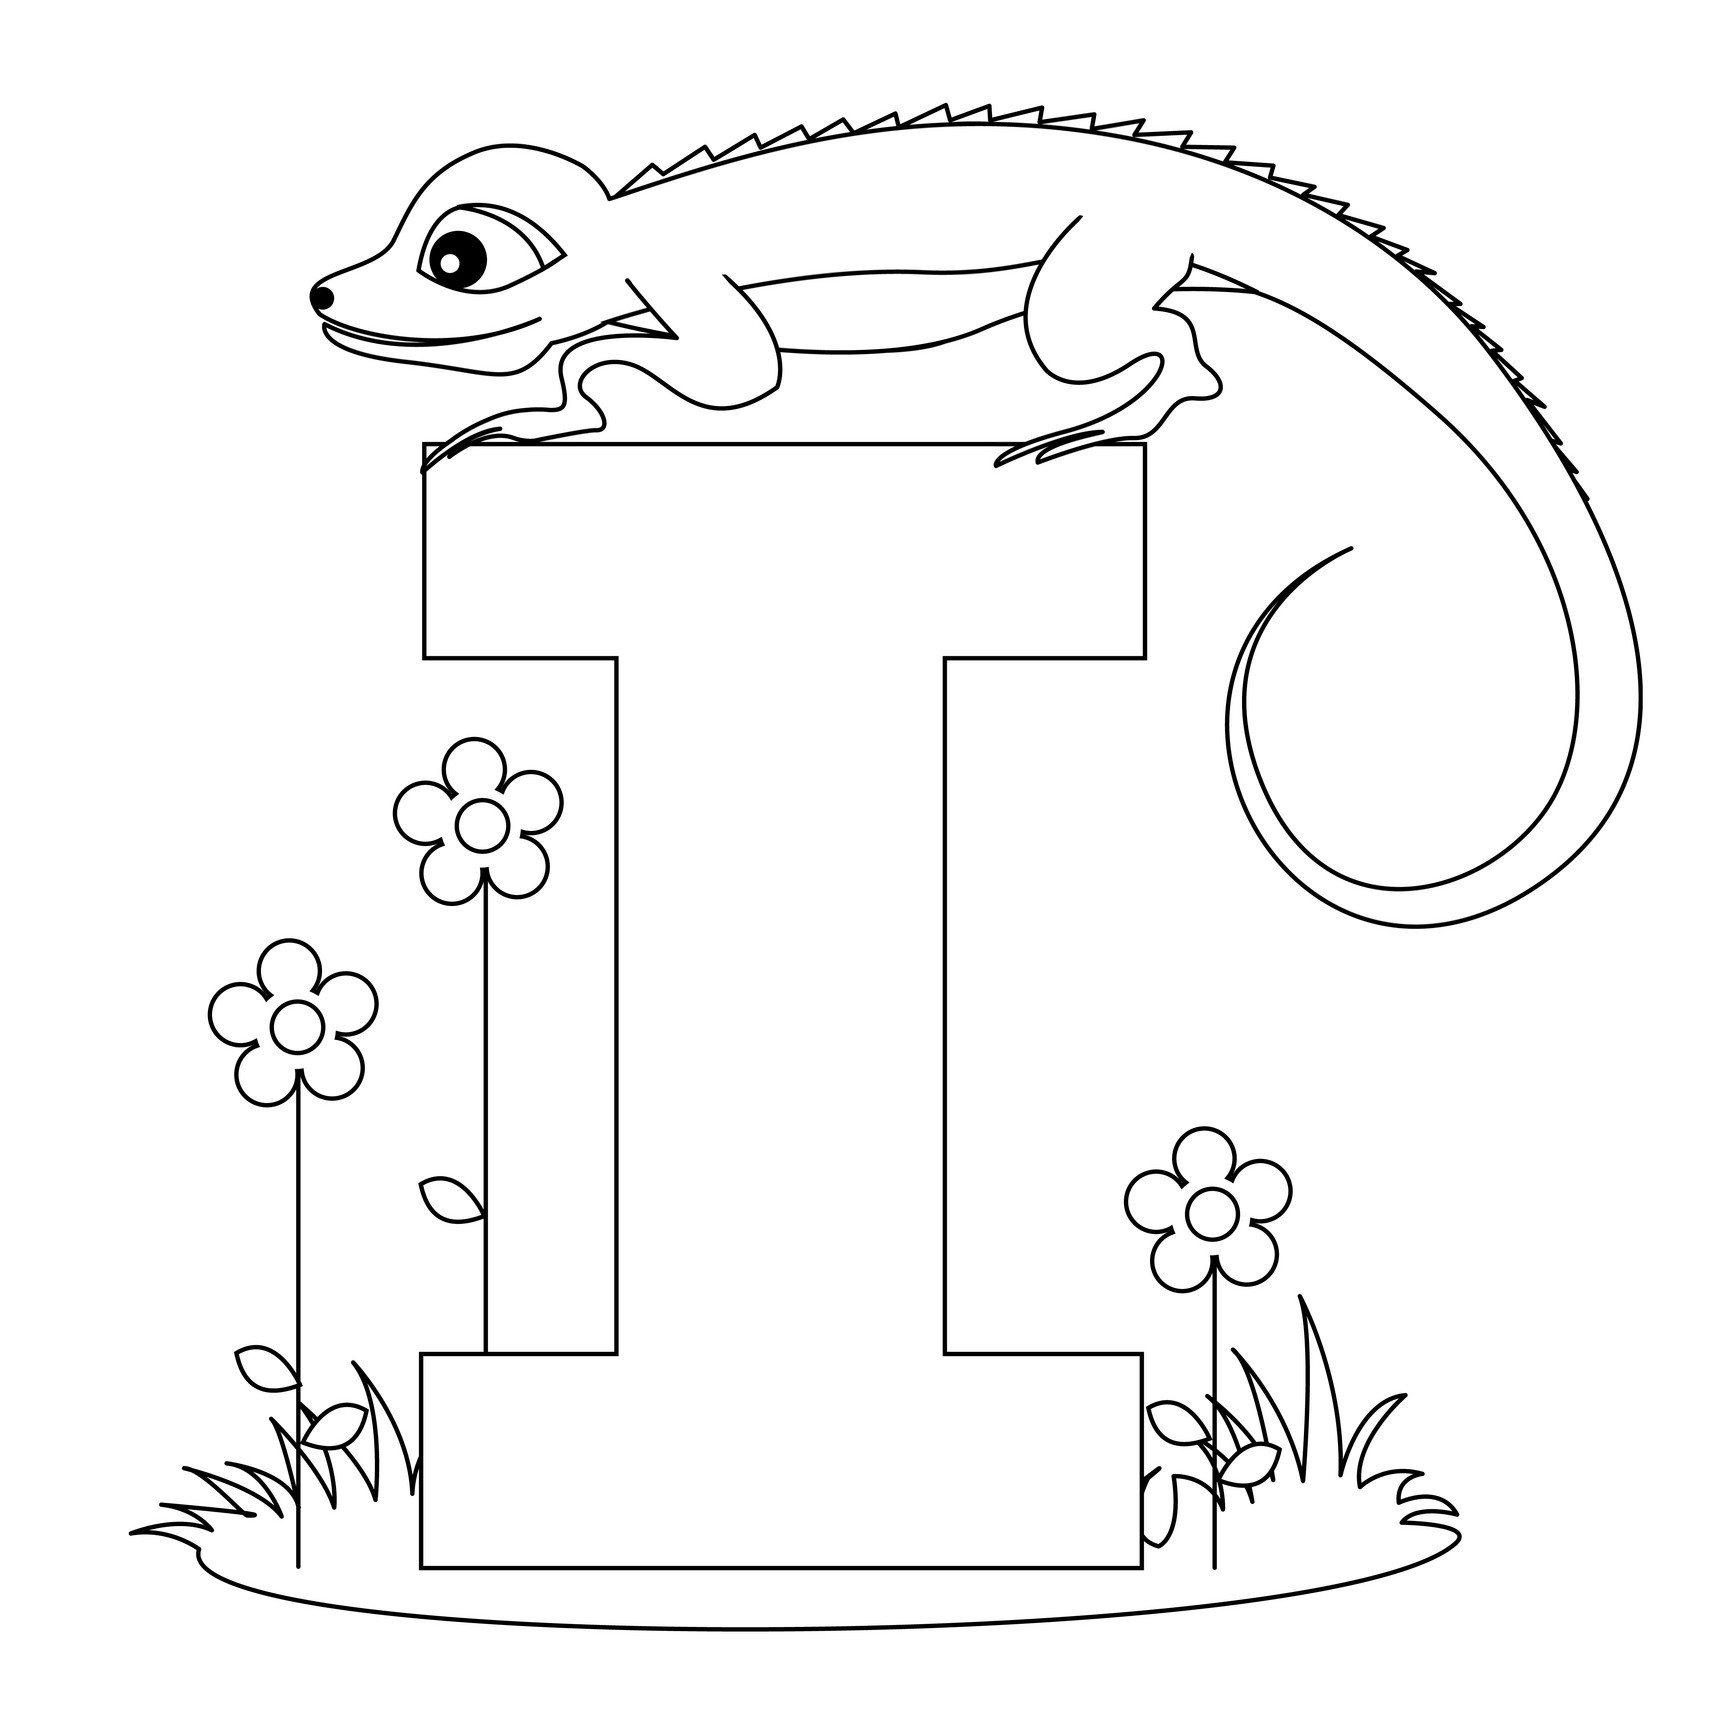 Free Printable Alphabet Coloring Pages for Kids - Best Coloring ...